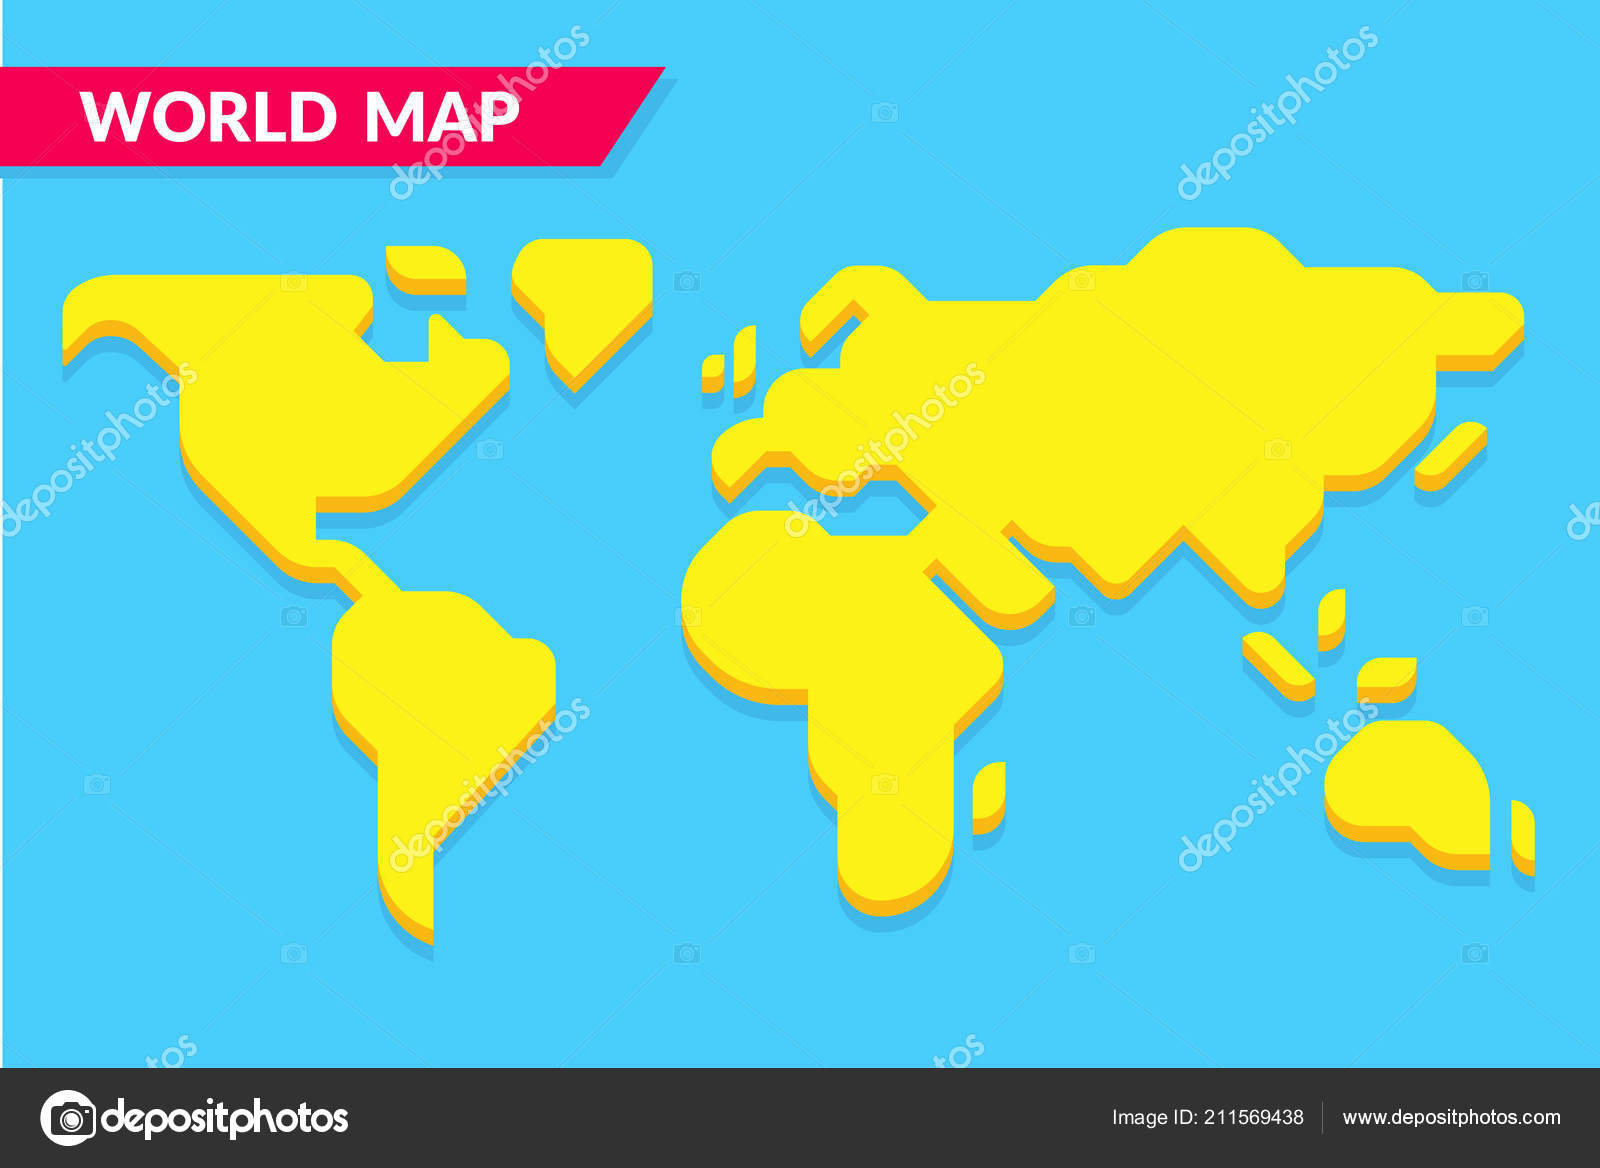 Simple Stylized World Map Silhouette Modern Minimal Style Isolated ...